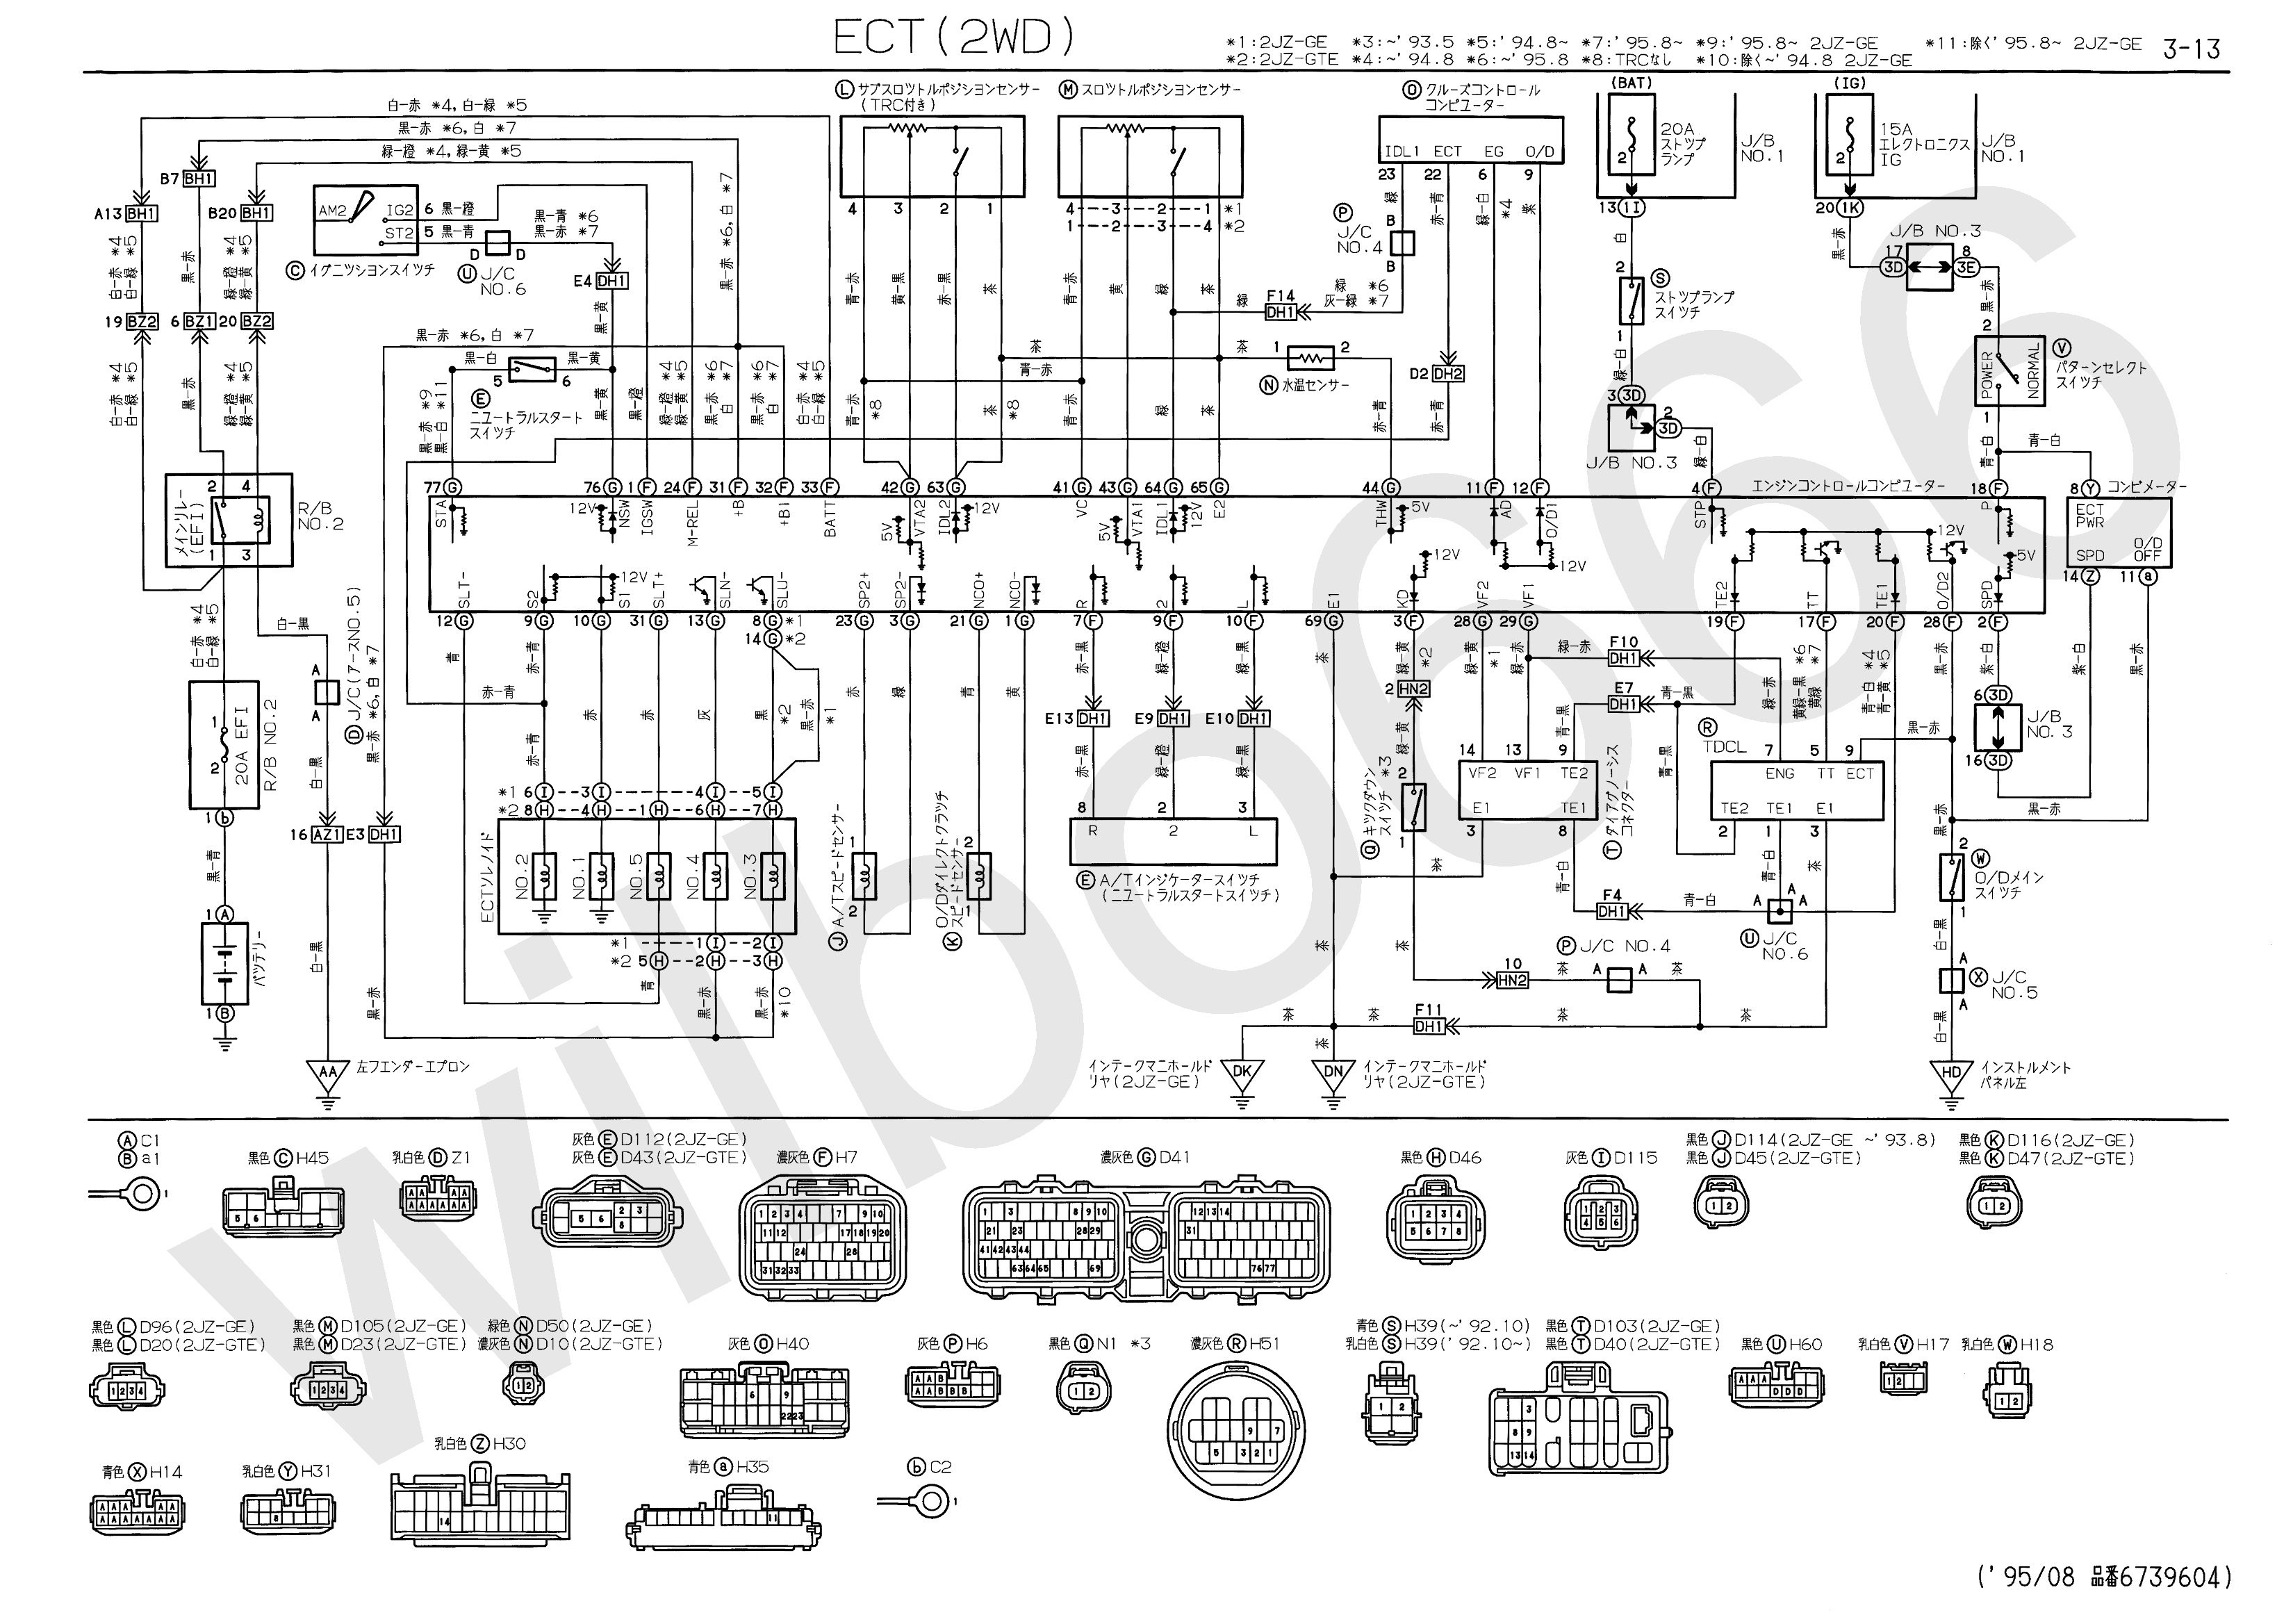 Toyota Trailer Connector Wiring Diagram | Best Wiring Library - Trailer Wiring Diagram Nsw